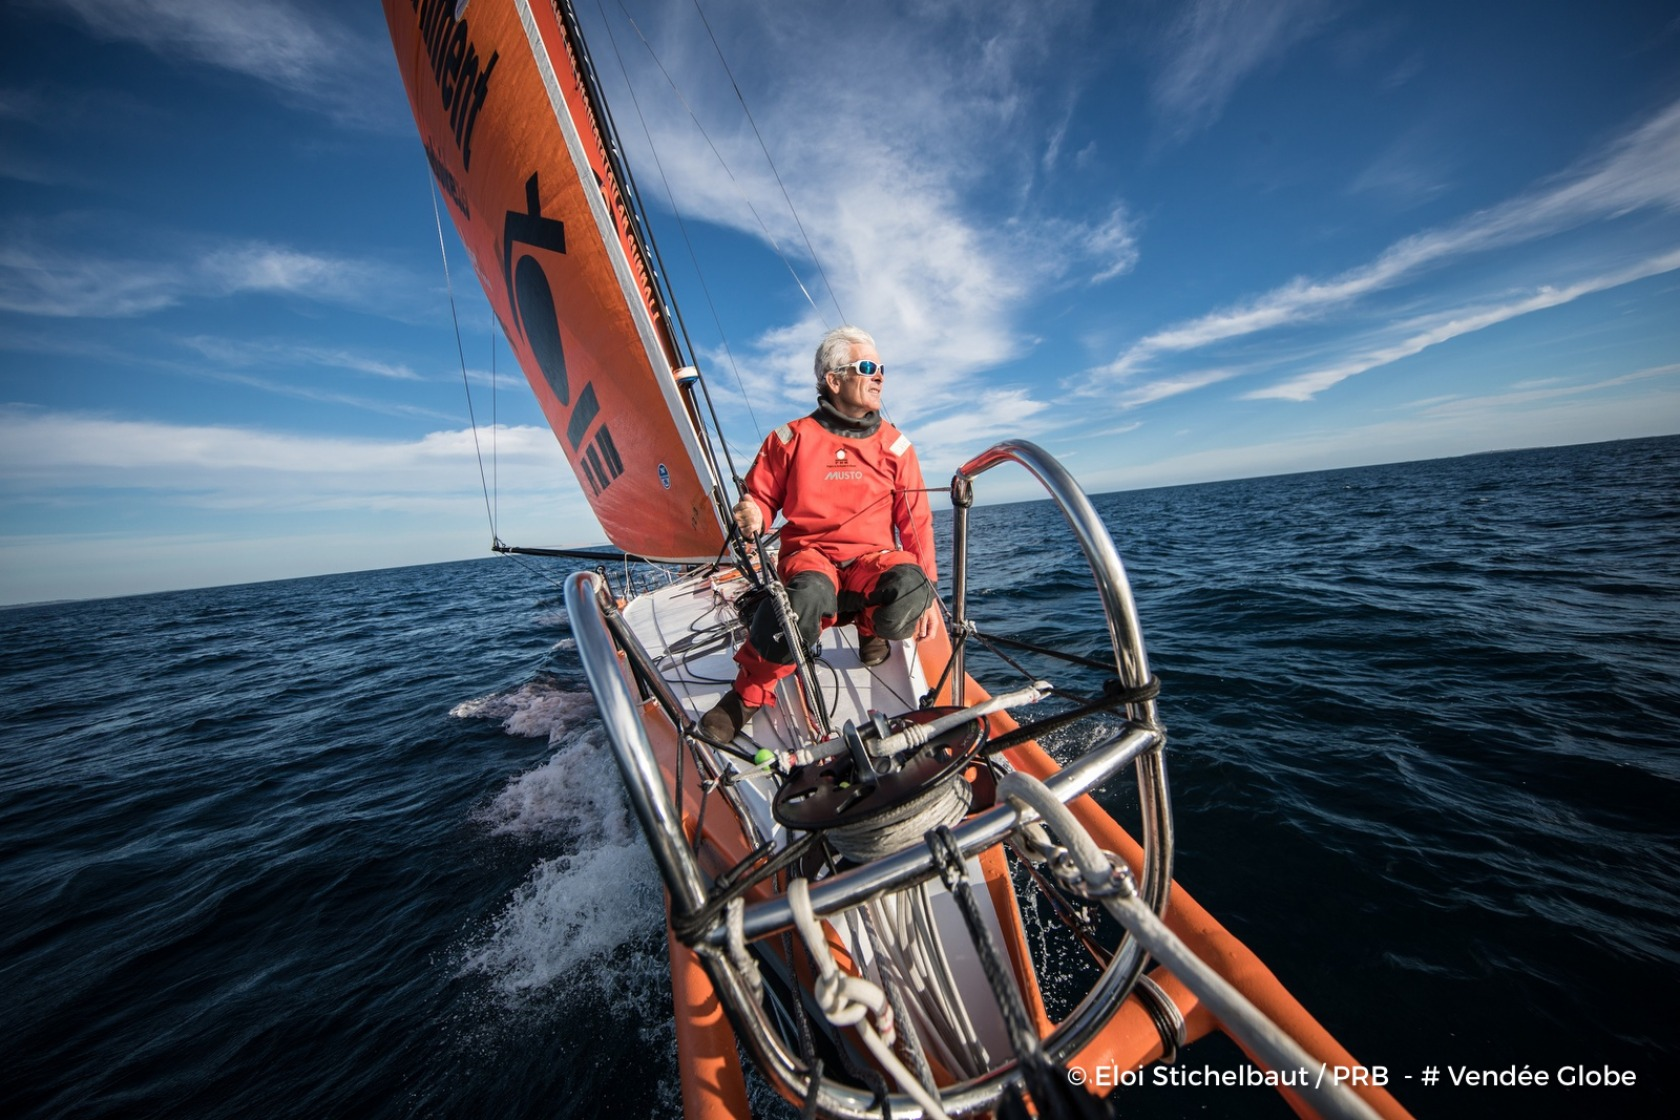 Onboard image bank for Vincent Riou  (FRA), skipper PRB, during training for the Vendee Globe solo race, off Belle Ile on August 18th, 2016 - Photo Eloi Stichelbaut / PRB Banque image embarquée pour Vincent Riou  (FRA), skipper PRB, lors d'un entraineme